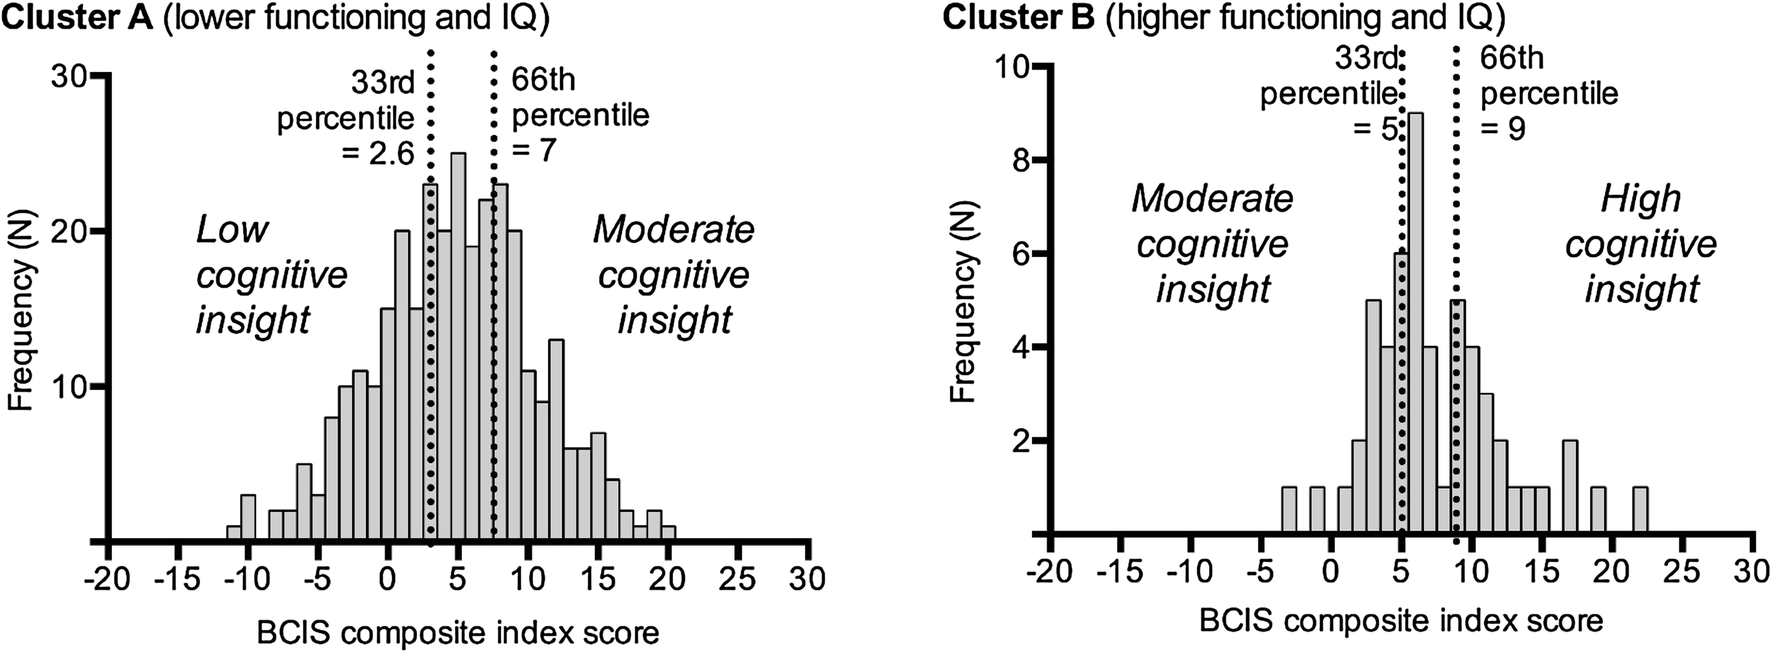 Establishing Clinical Cutoff Values for the Beck Cognitive Insight